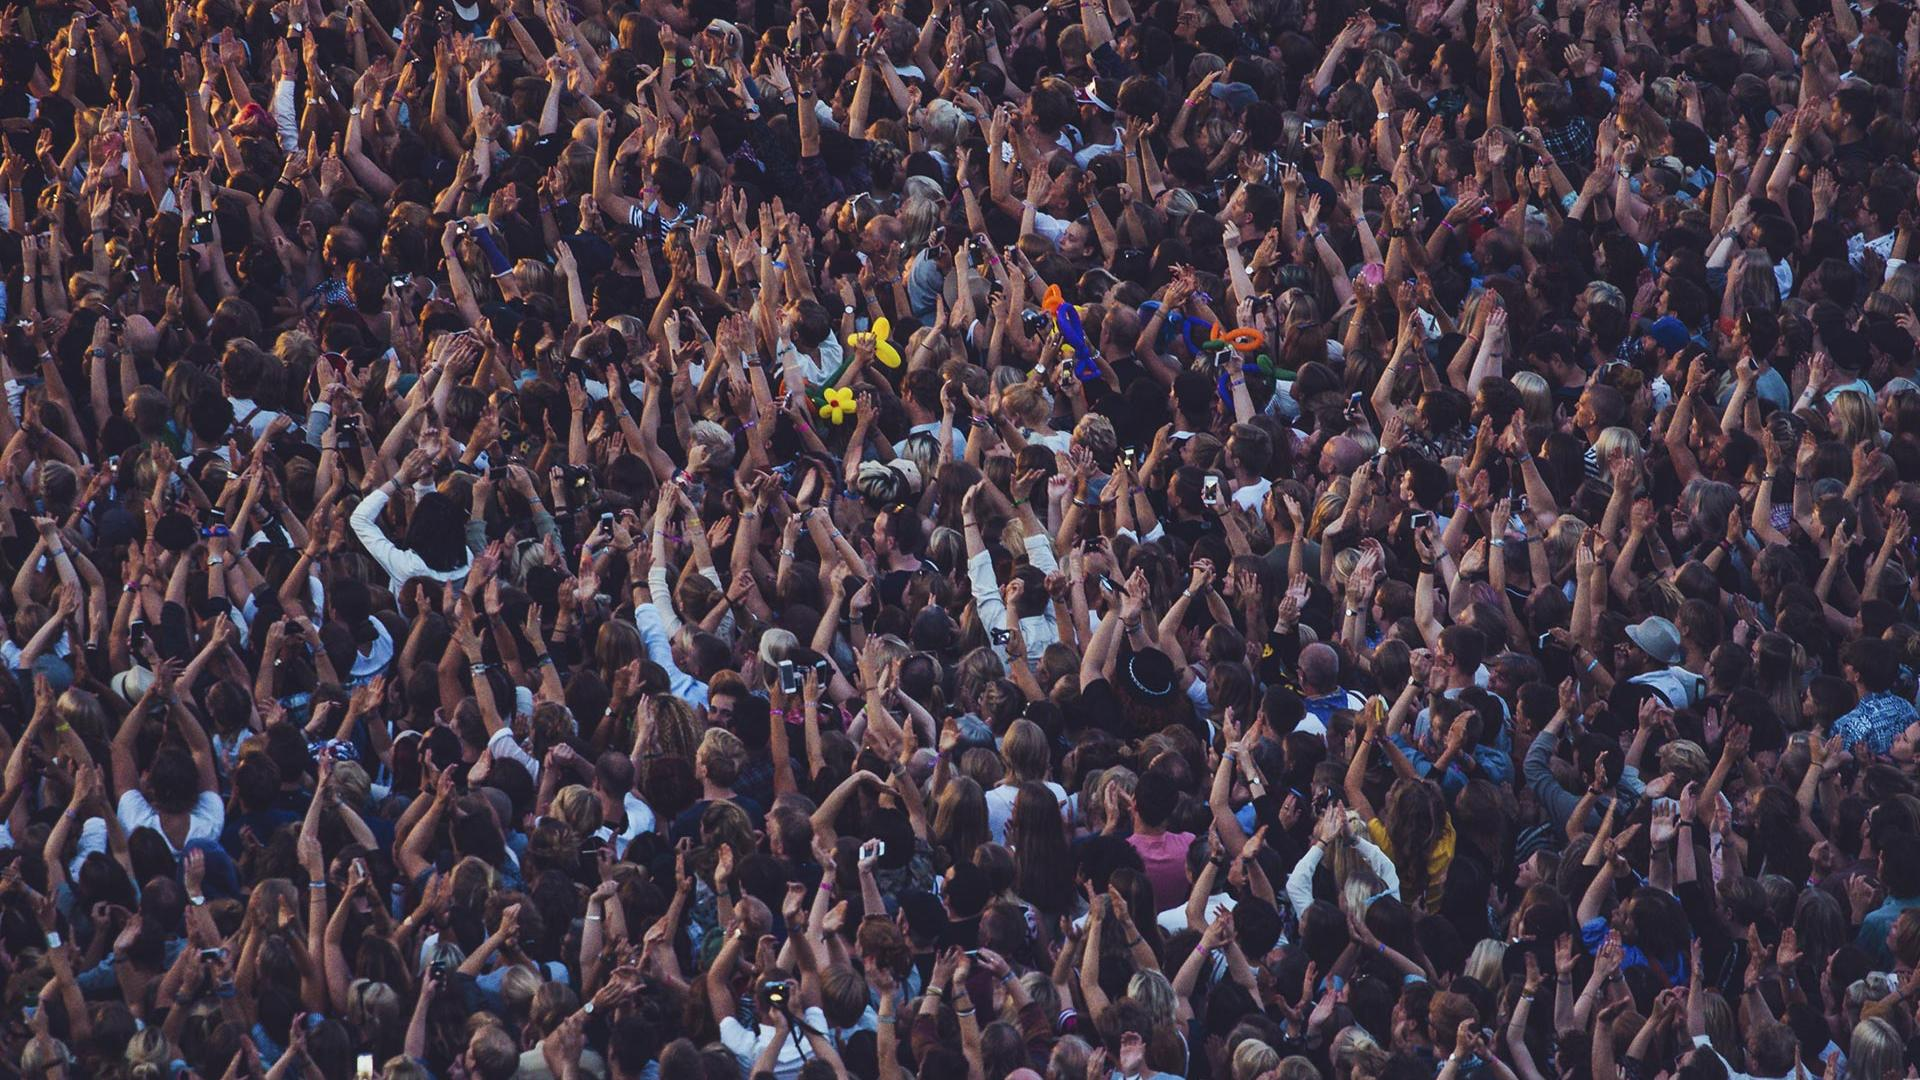 Crowd at Way Out West festival, Gothenburg